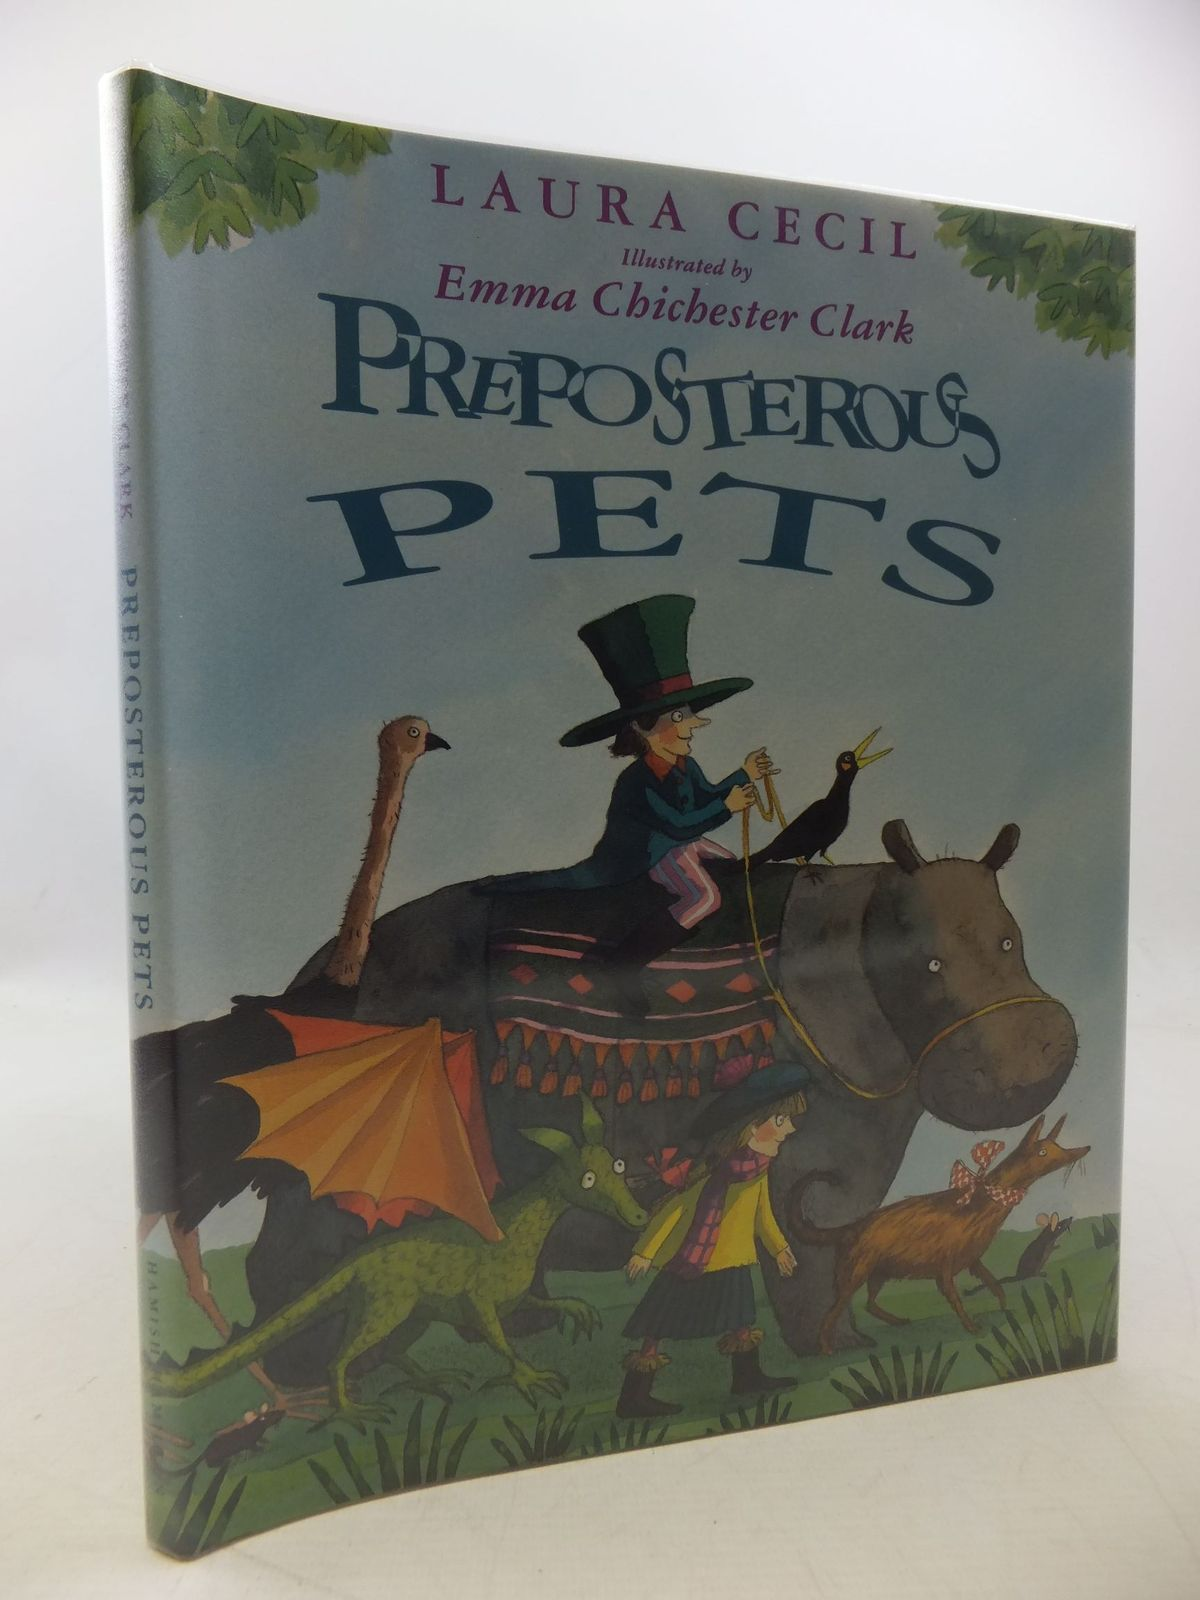 Photo of PREPOSTEROUS PETS written by Cecil, Laura illustrated by Clark, Emma Chichester published by Hamish Hamilton (STOCK CODE: 1710259)  for sale by Stella & Rose's Books